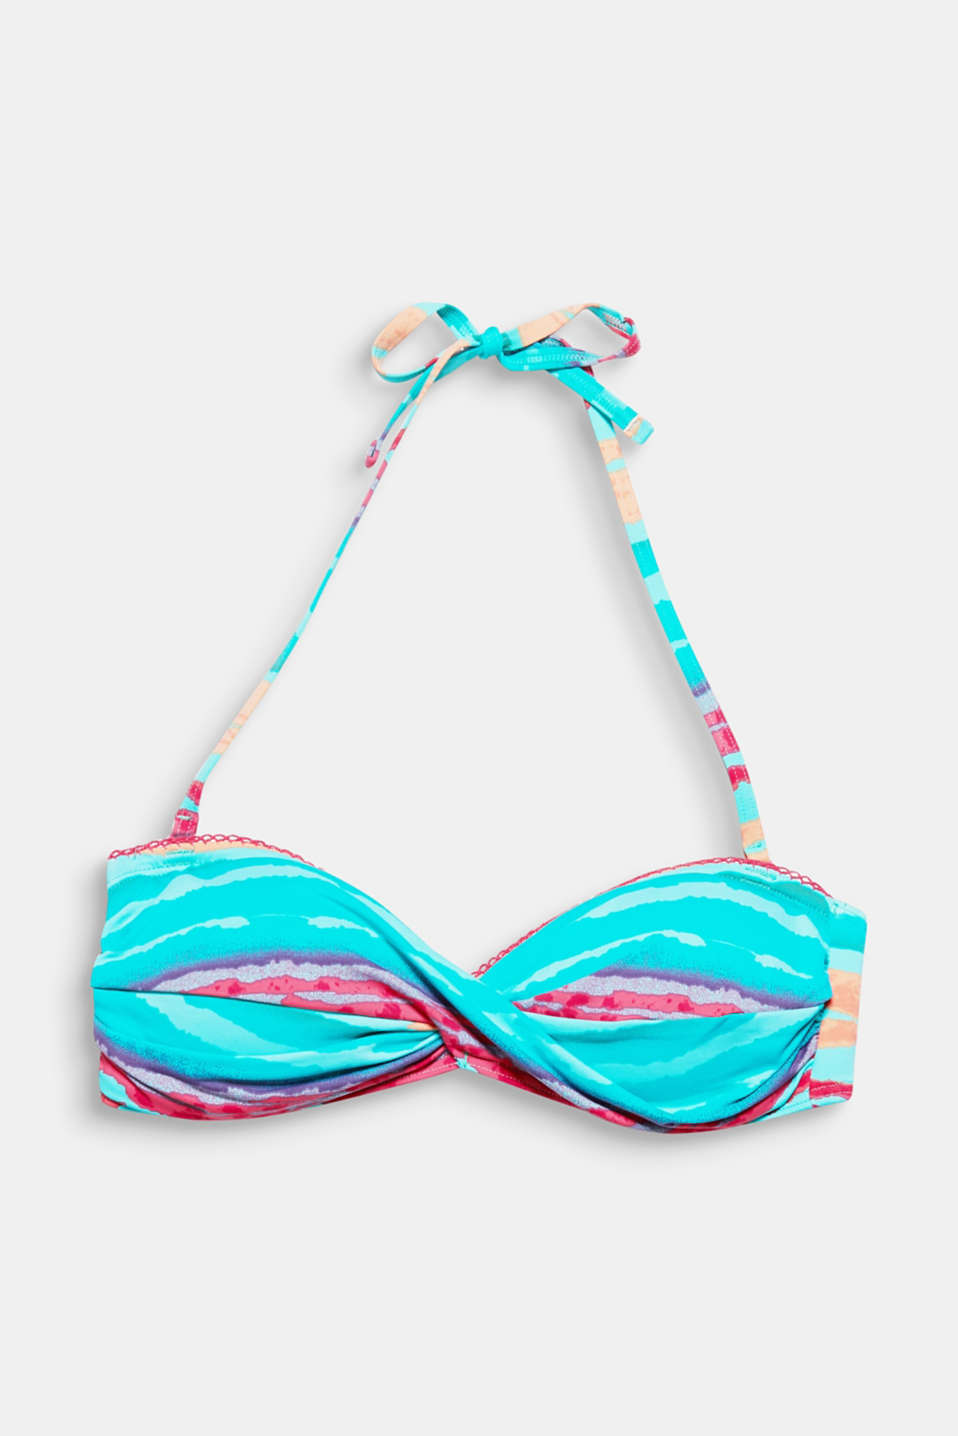 AROCA collection – uneven multi-coloured stripes give this bandeau top its summery flair!